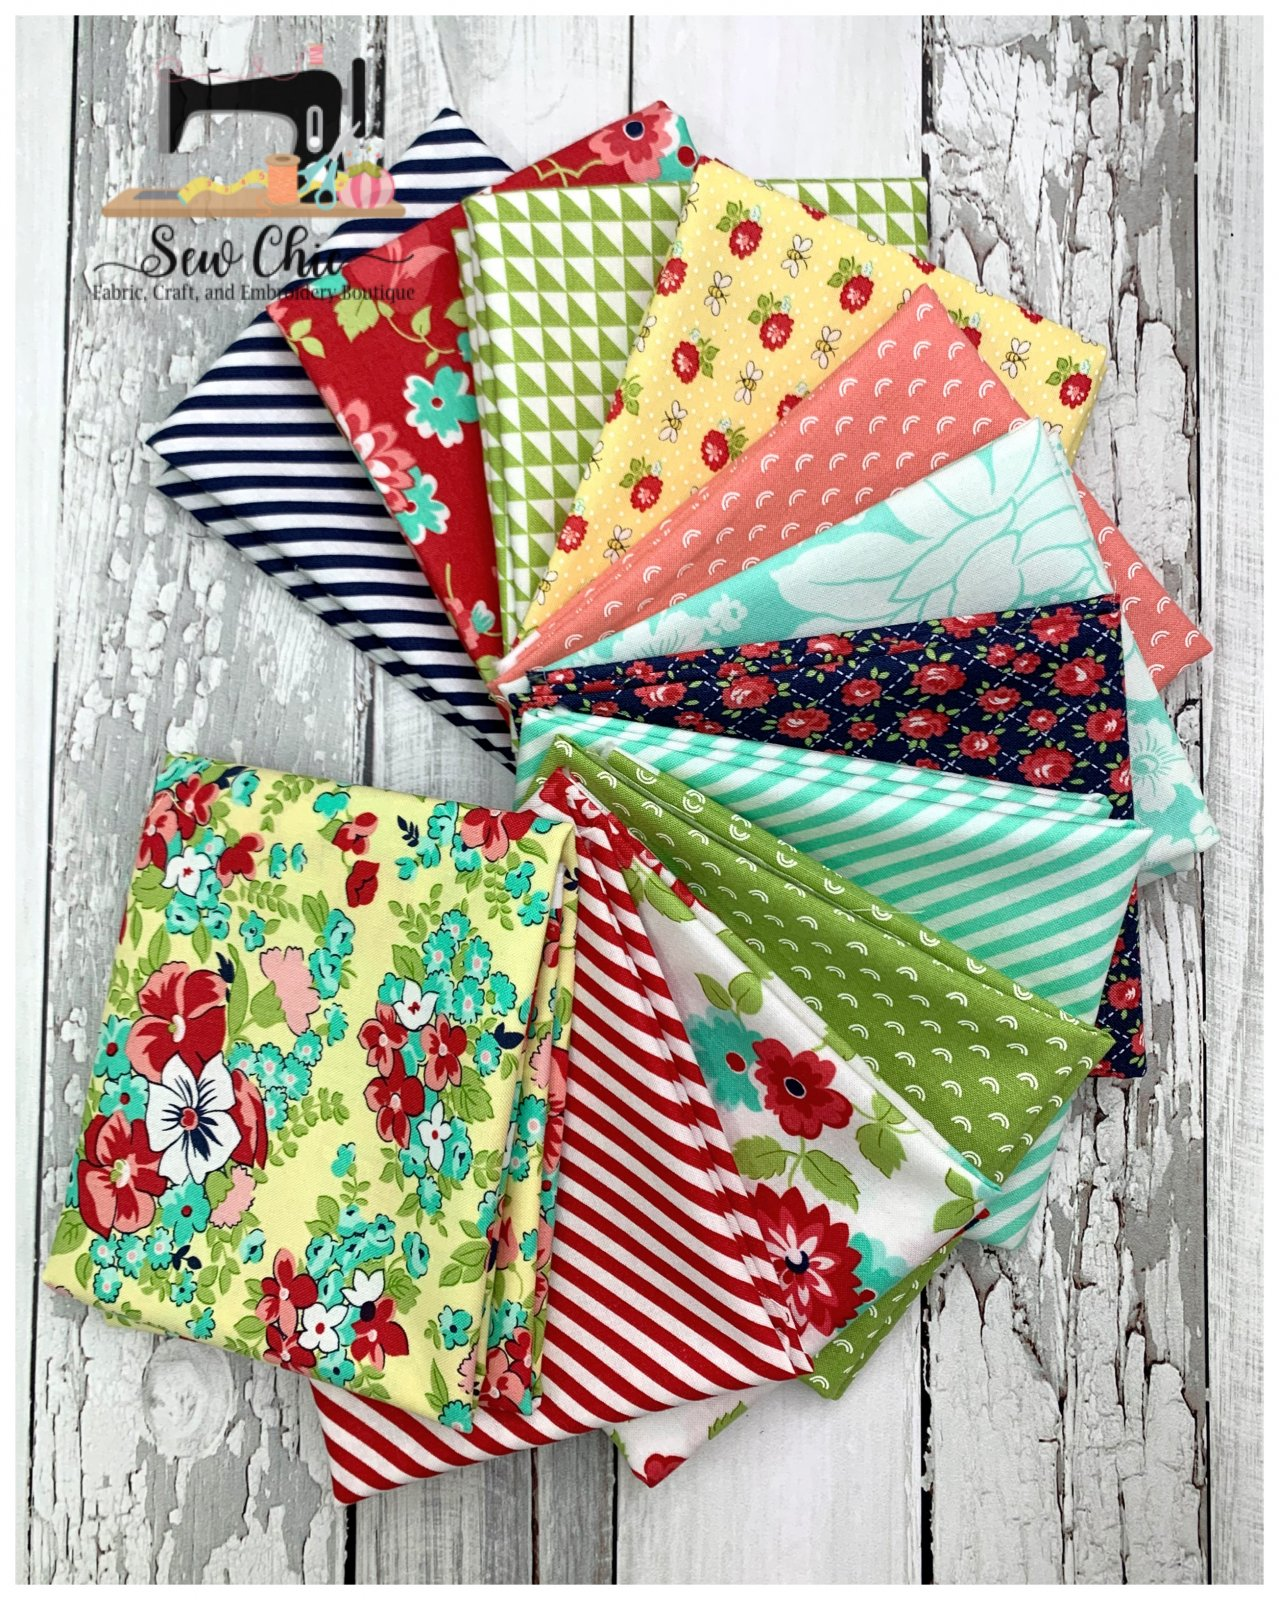 Shine On Mini Fat Quarter Bundle 12 Fabrics